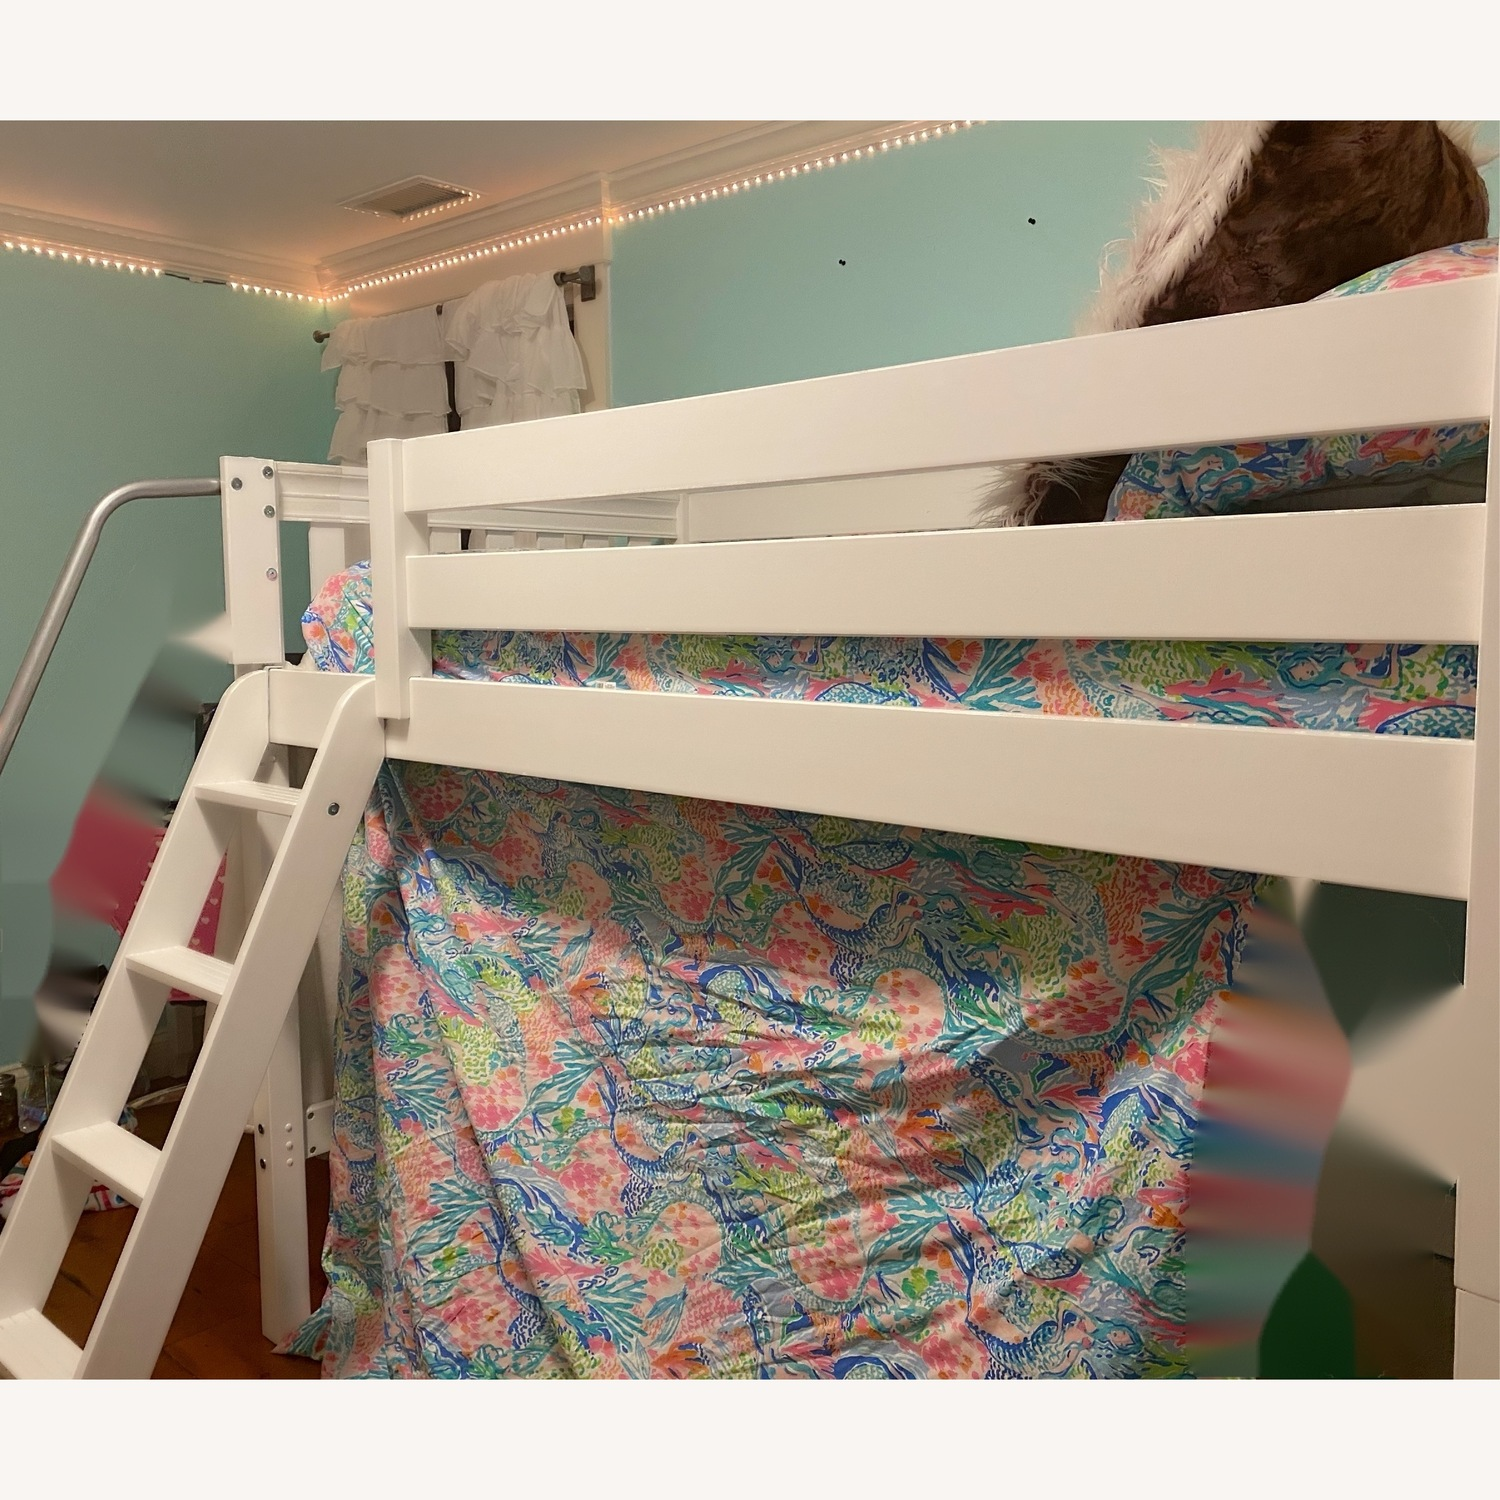 New White Loft Bed - Twin - image-3